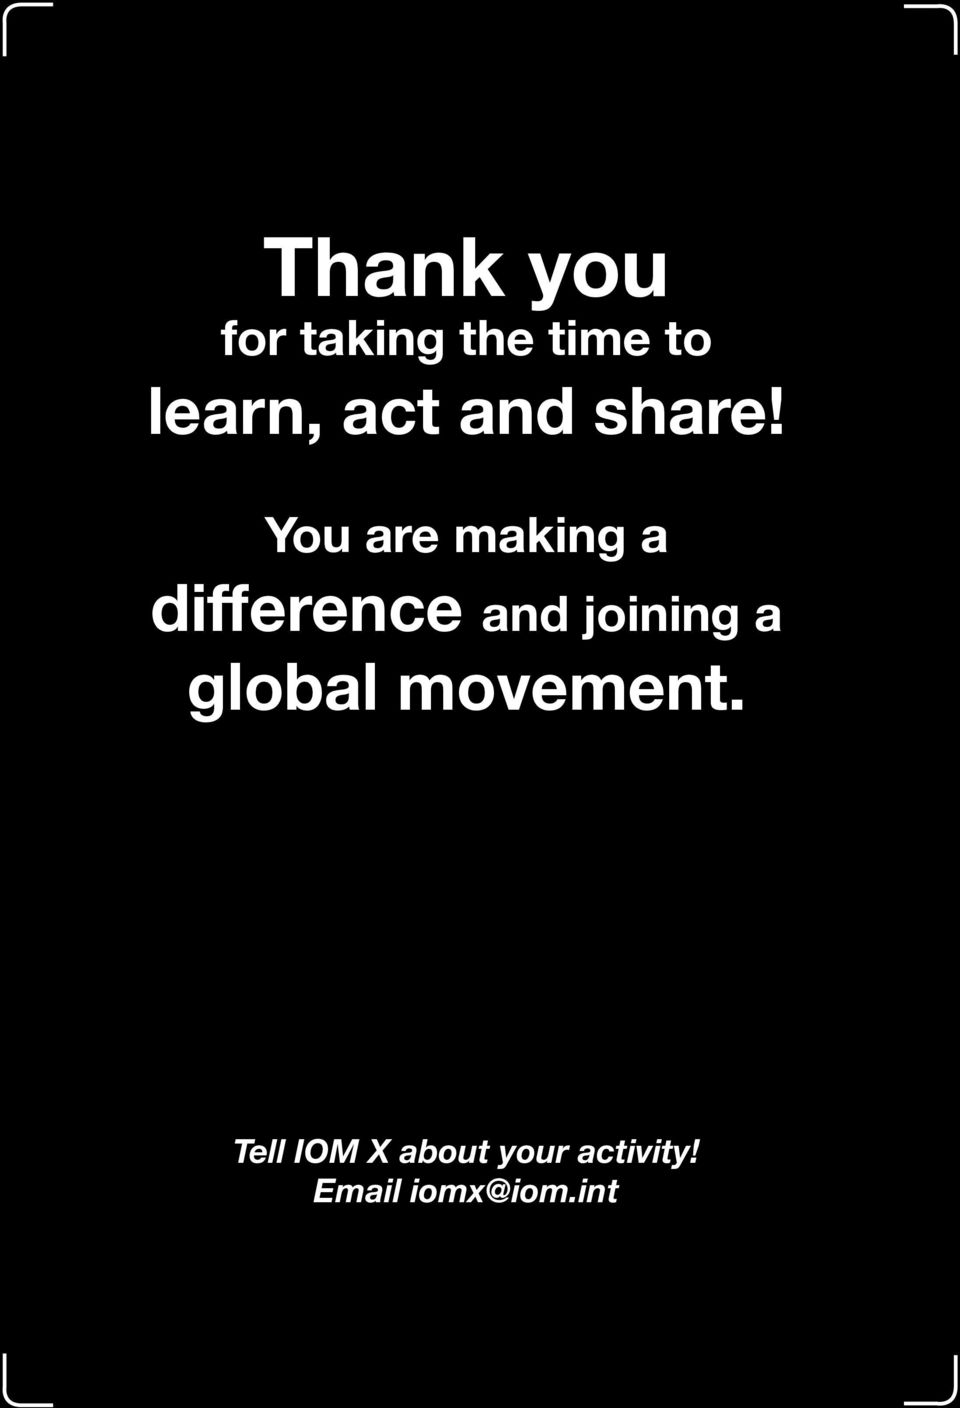 You are making a difference and joining